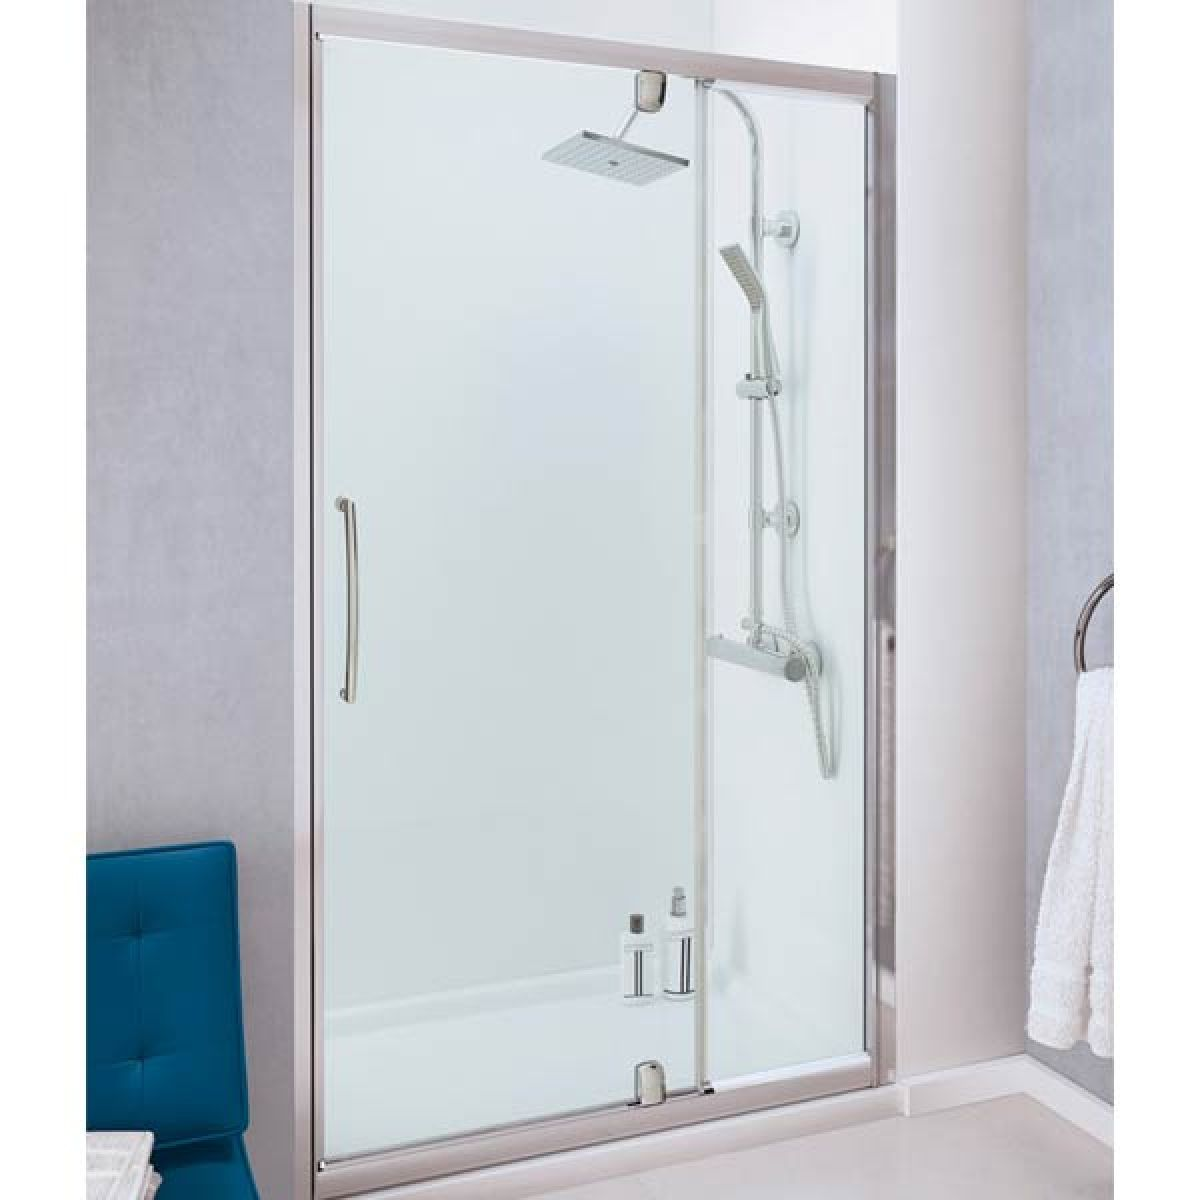 Lakes Silver Semi-Frameless Pivot Door with integrated In-line Panel